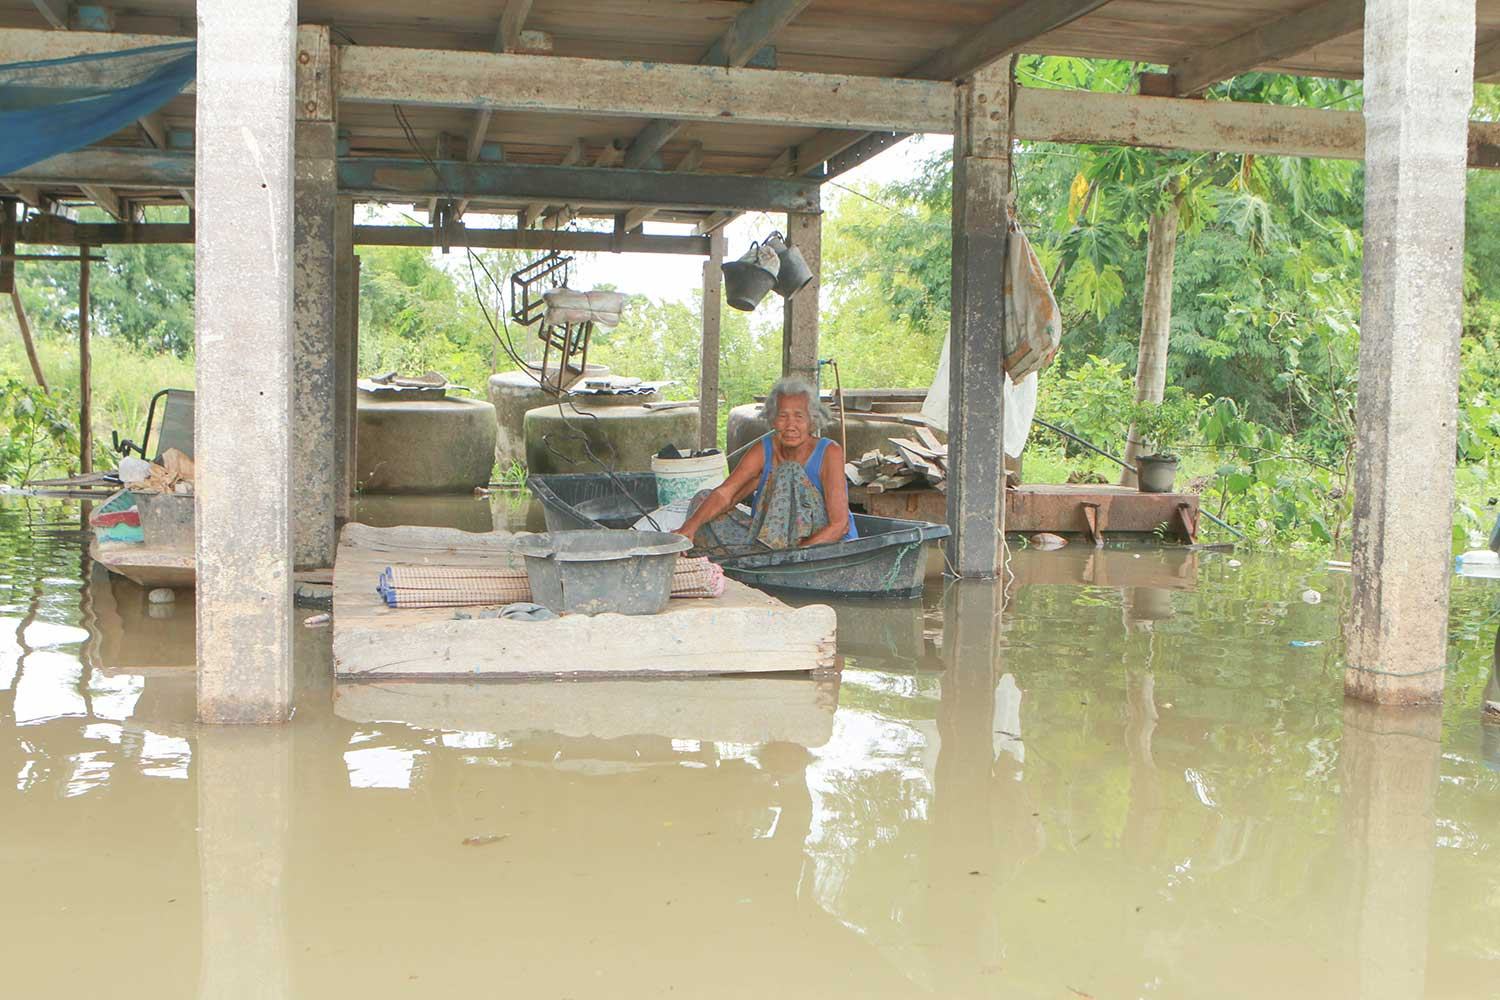 A woman uses a small boat to get around her flooded village in Chum Saeng district of Nakhon Sawan province on Monday. (Photo by Chalit Phumpuang)